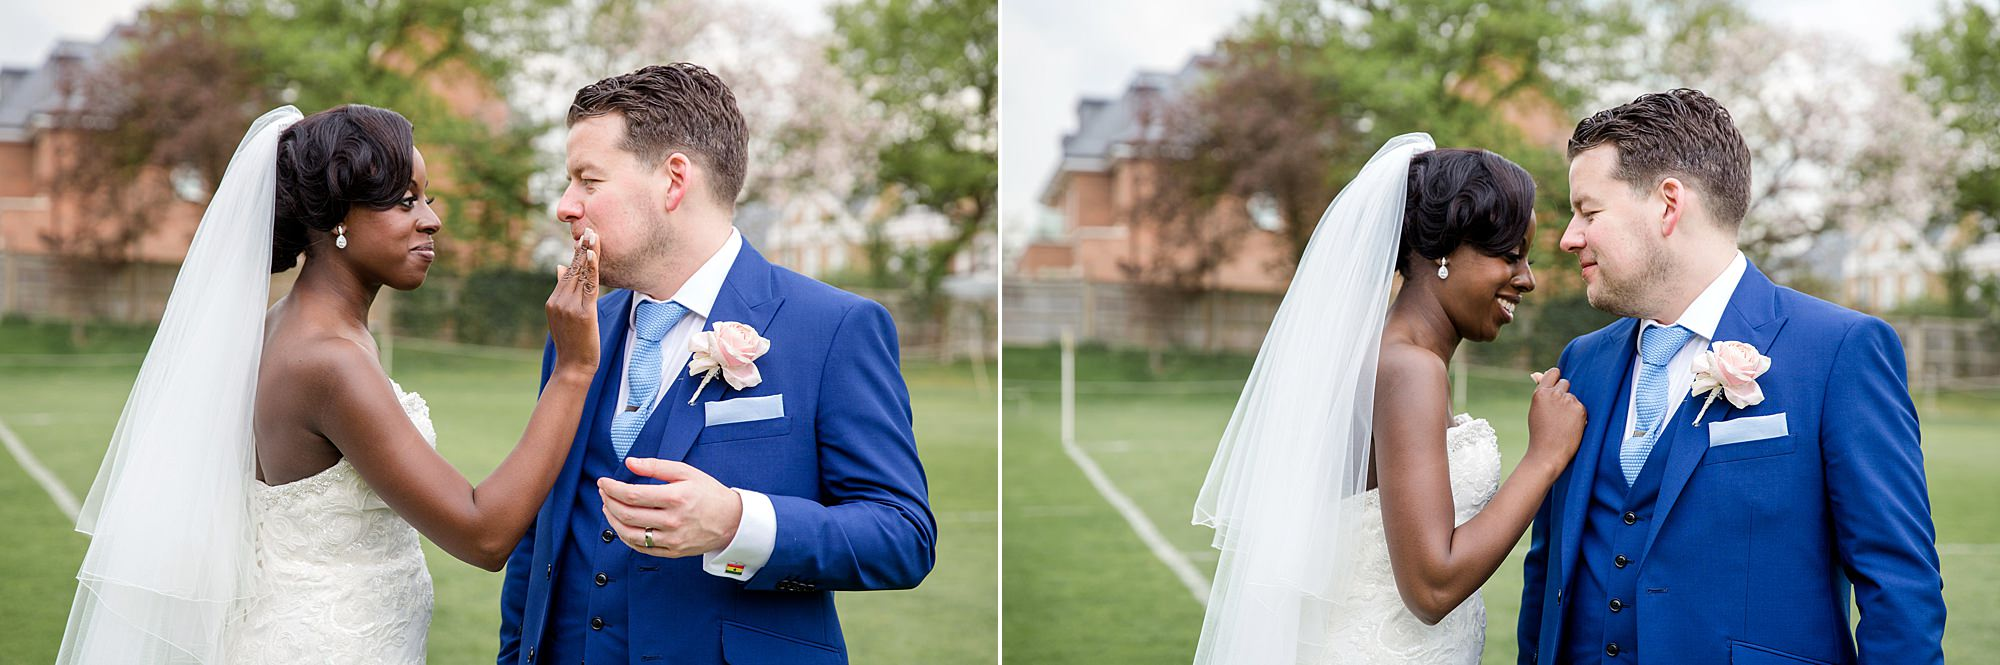 Bank of England Sports Centre wedding bride wipes lipstick off groom